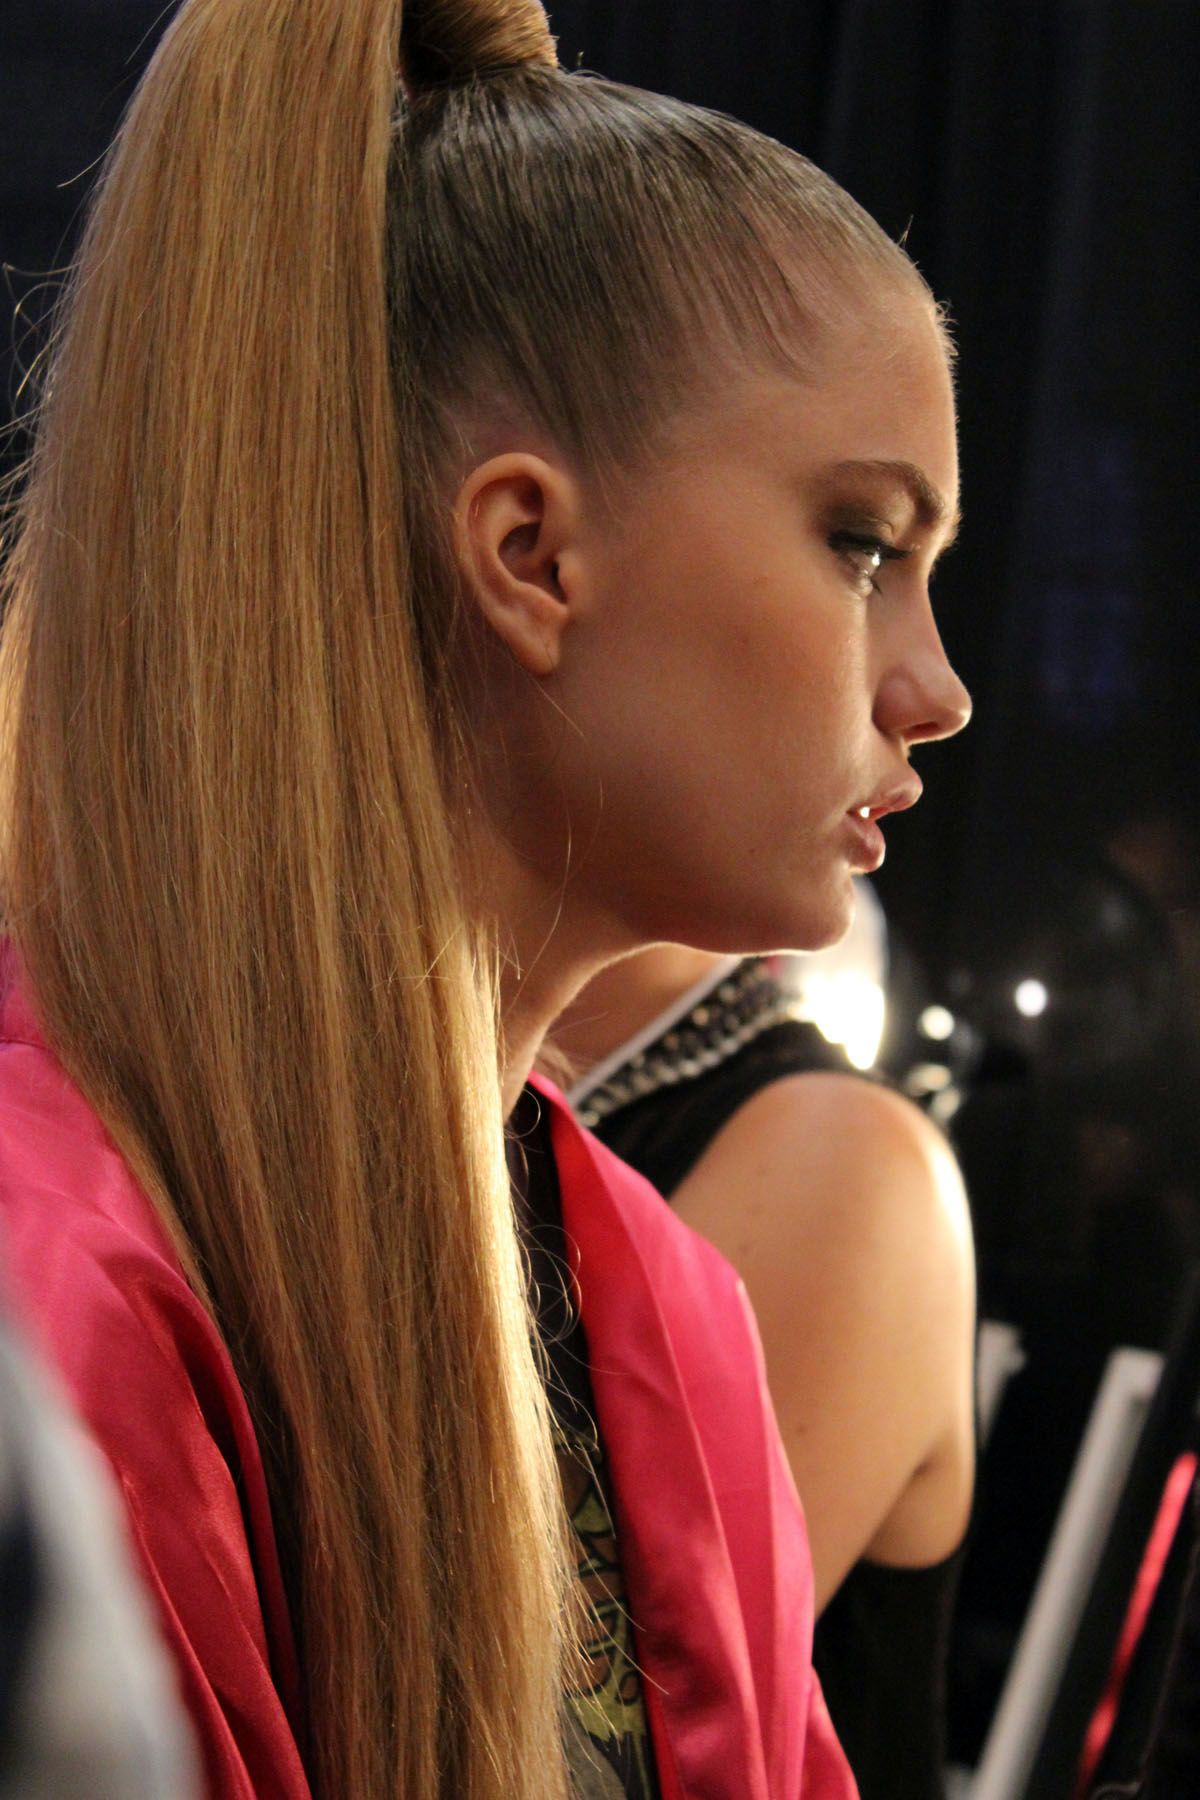 Ponytail Hairstyle Miami Beach Fashion Week Swim Sleek High Ponytail